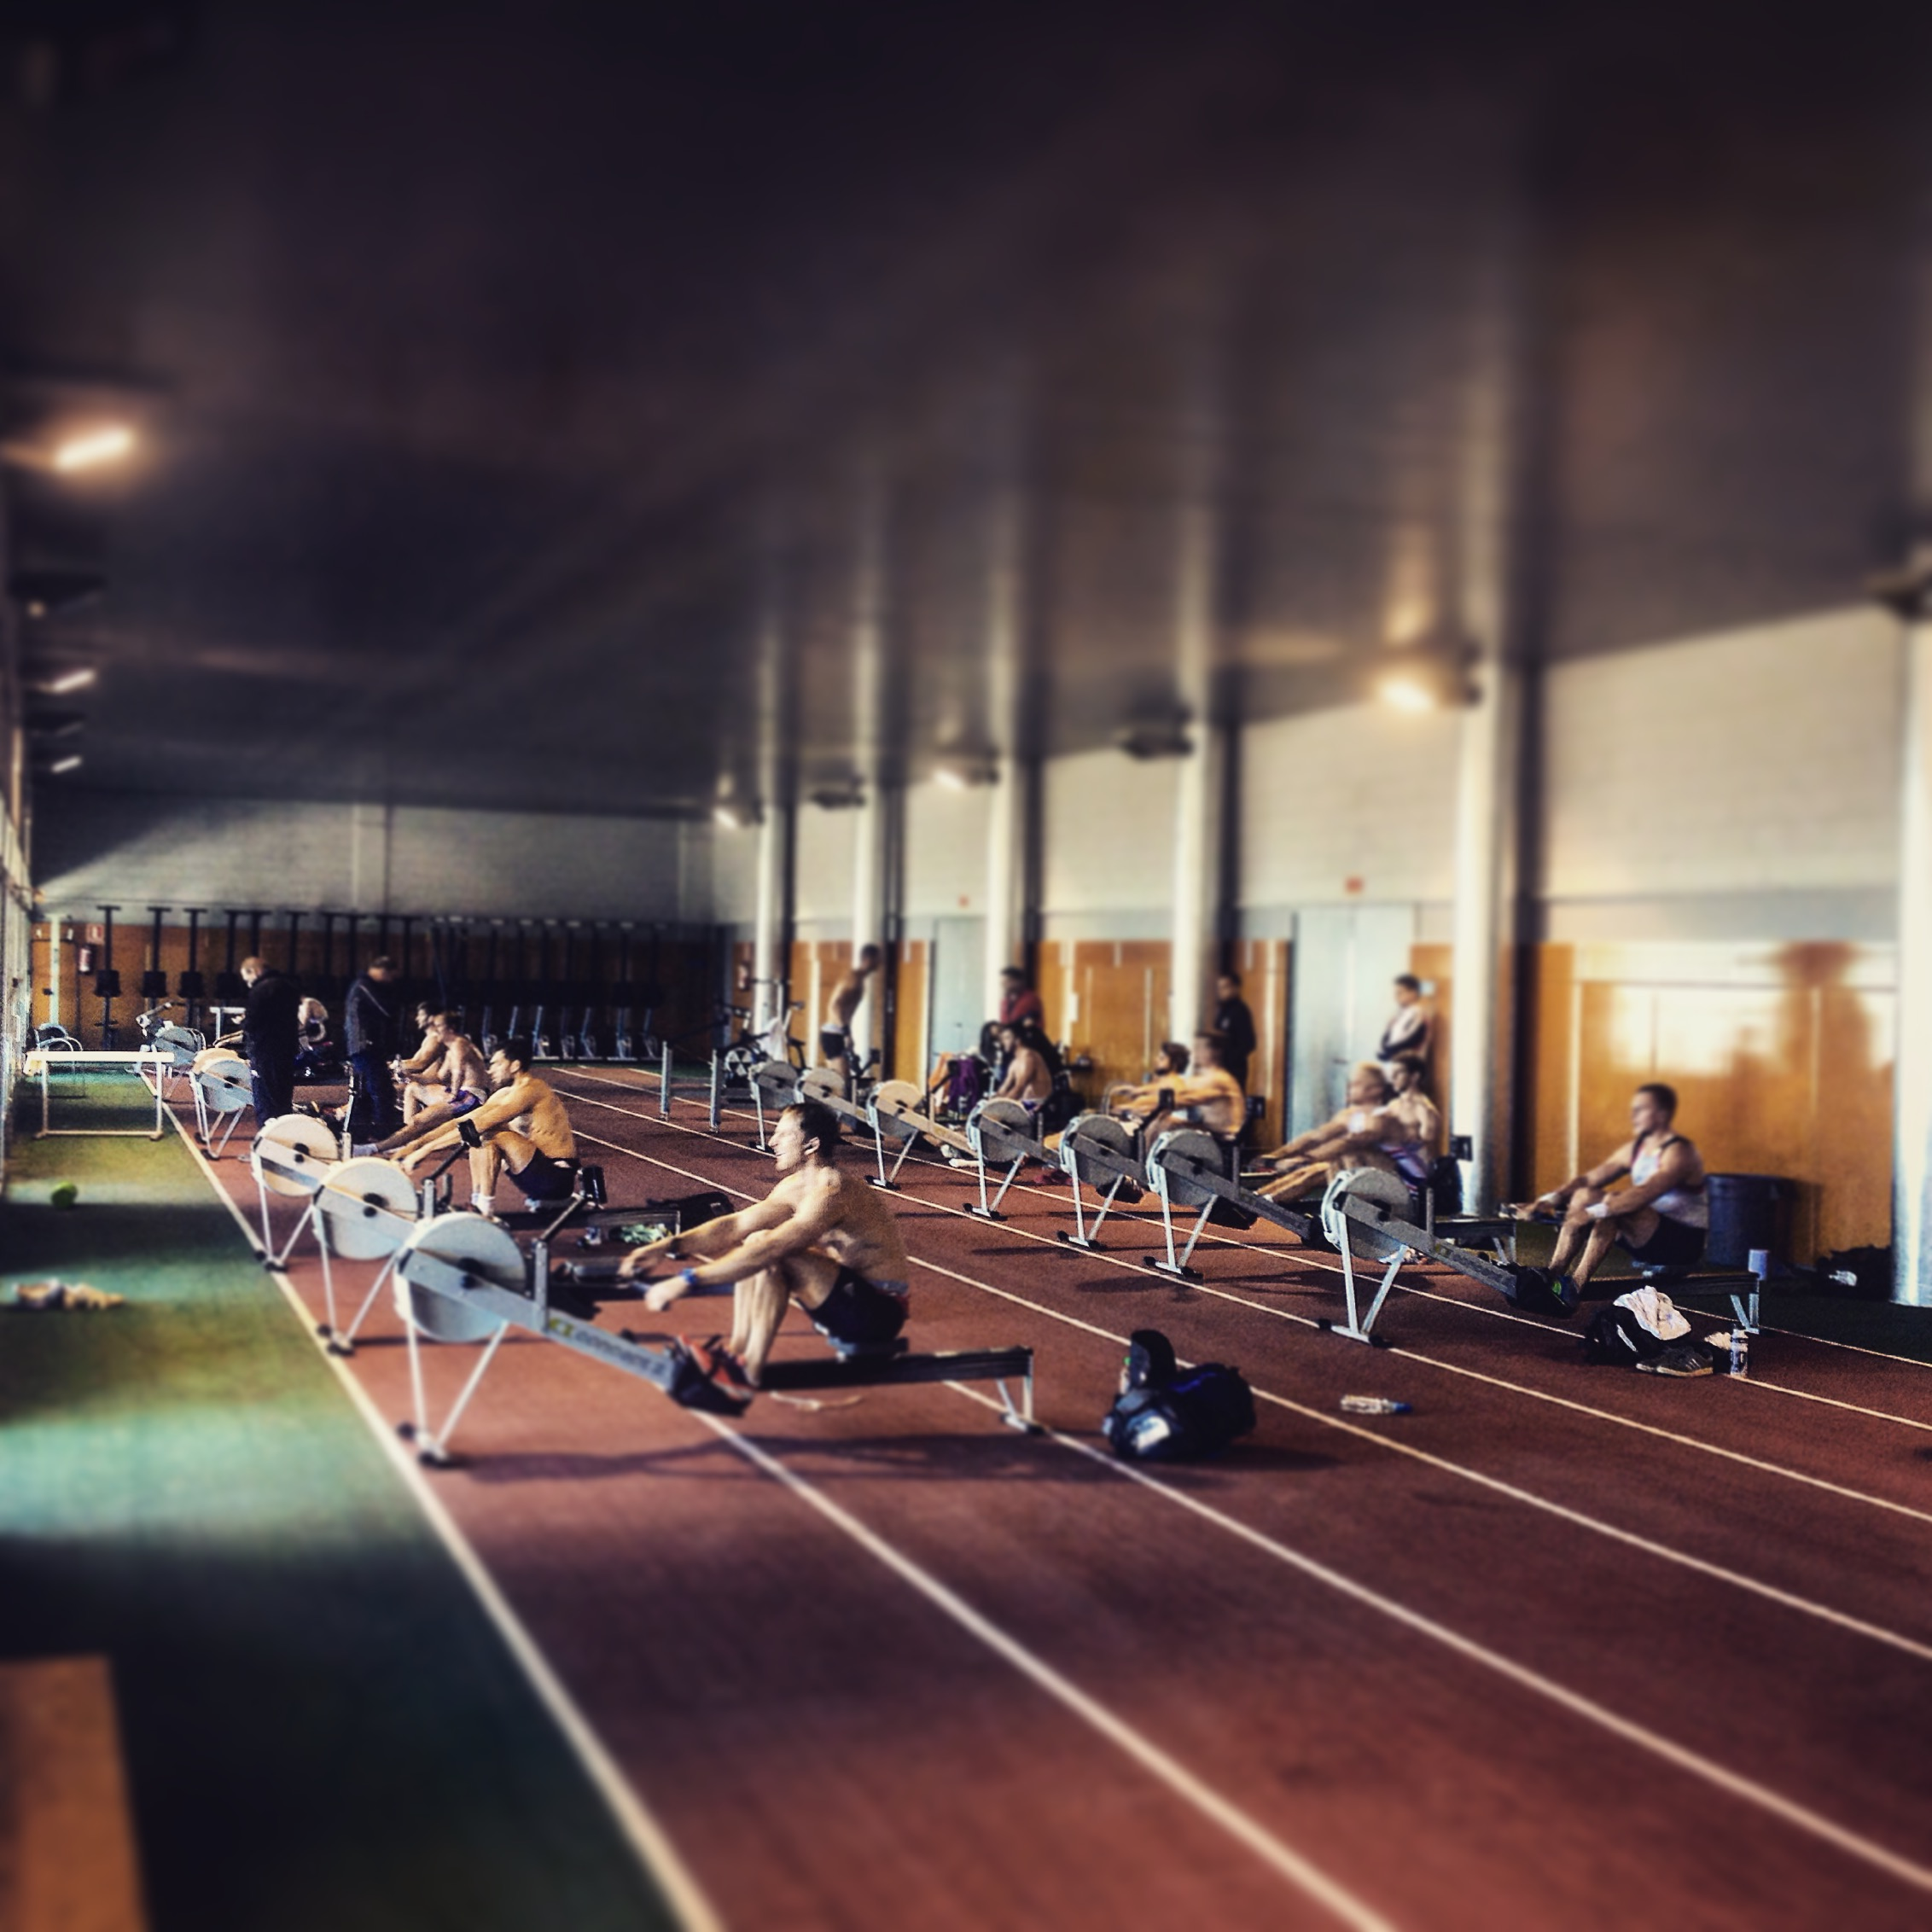 The sweat room, this is where medals are won...